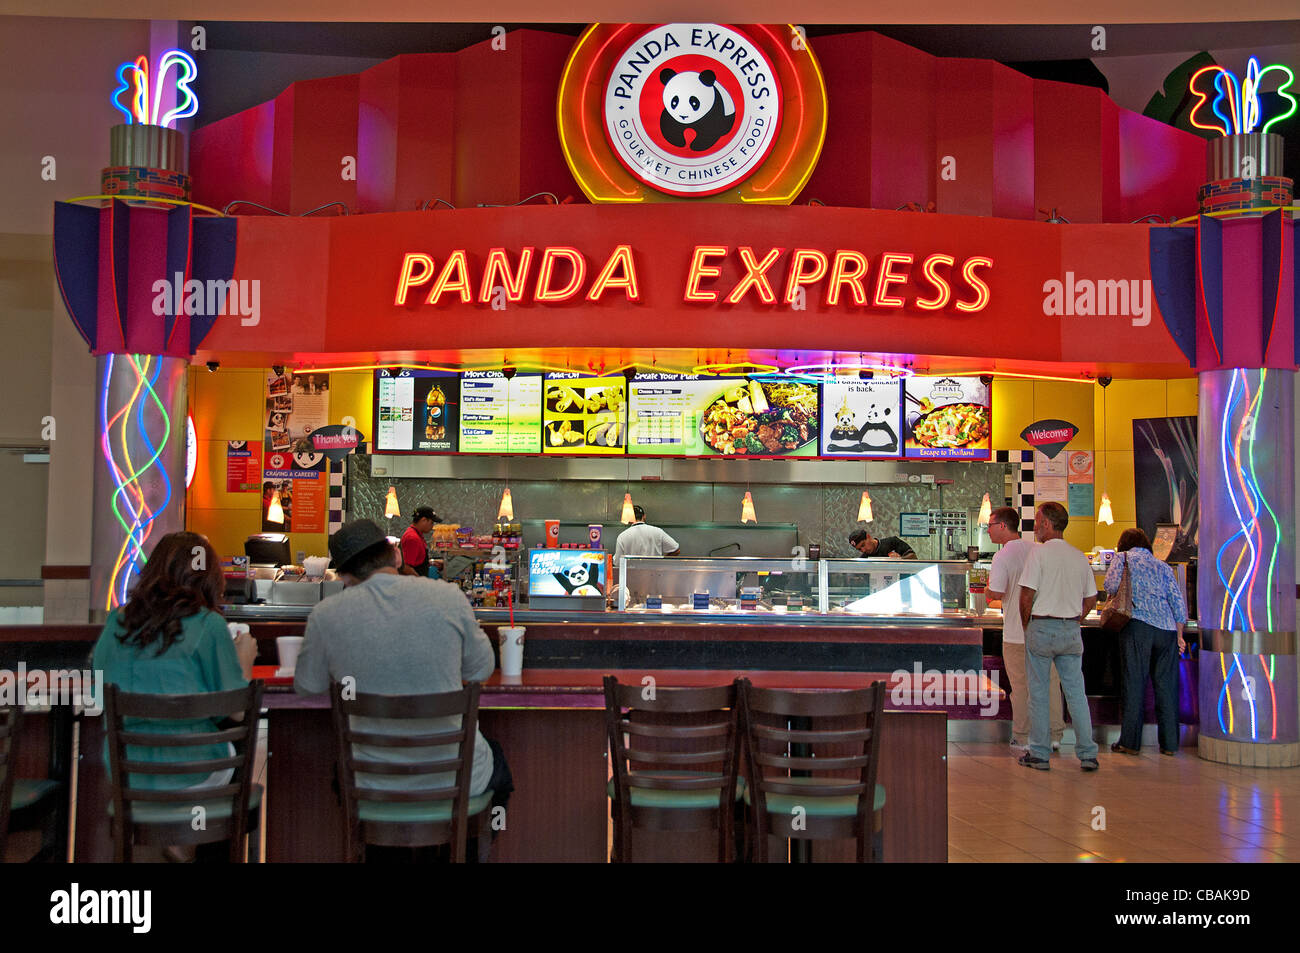 Panda Express Fast Food Shopping Mall Food Court United States - Stock Image